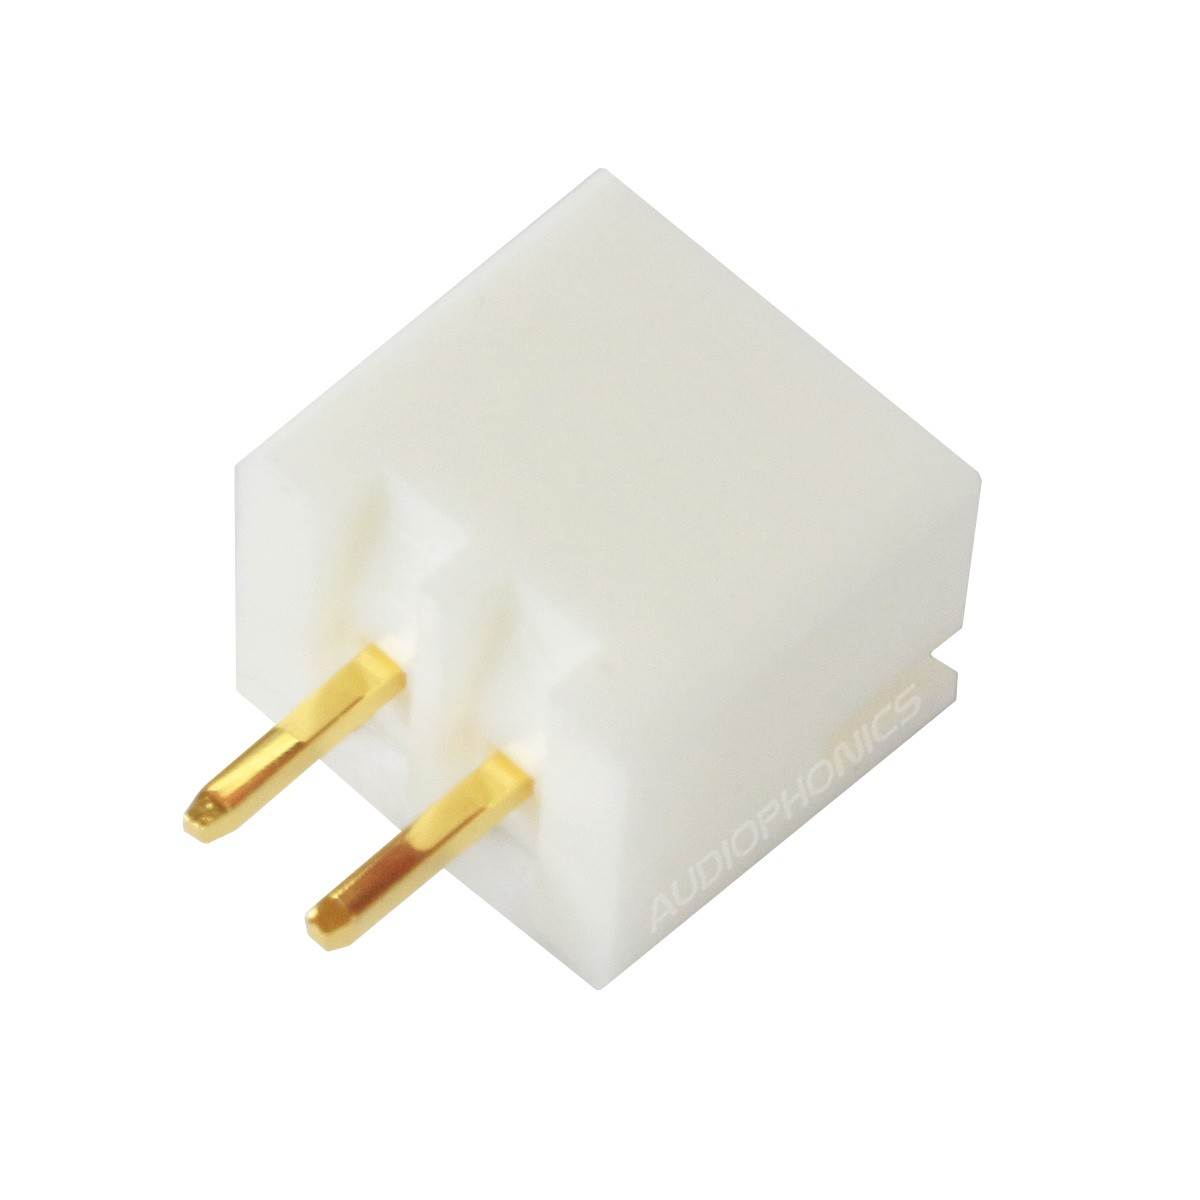 XH 2.54mm Male Socket 2 Channels Gold-Plated White (Unit)